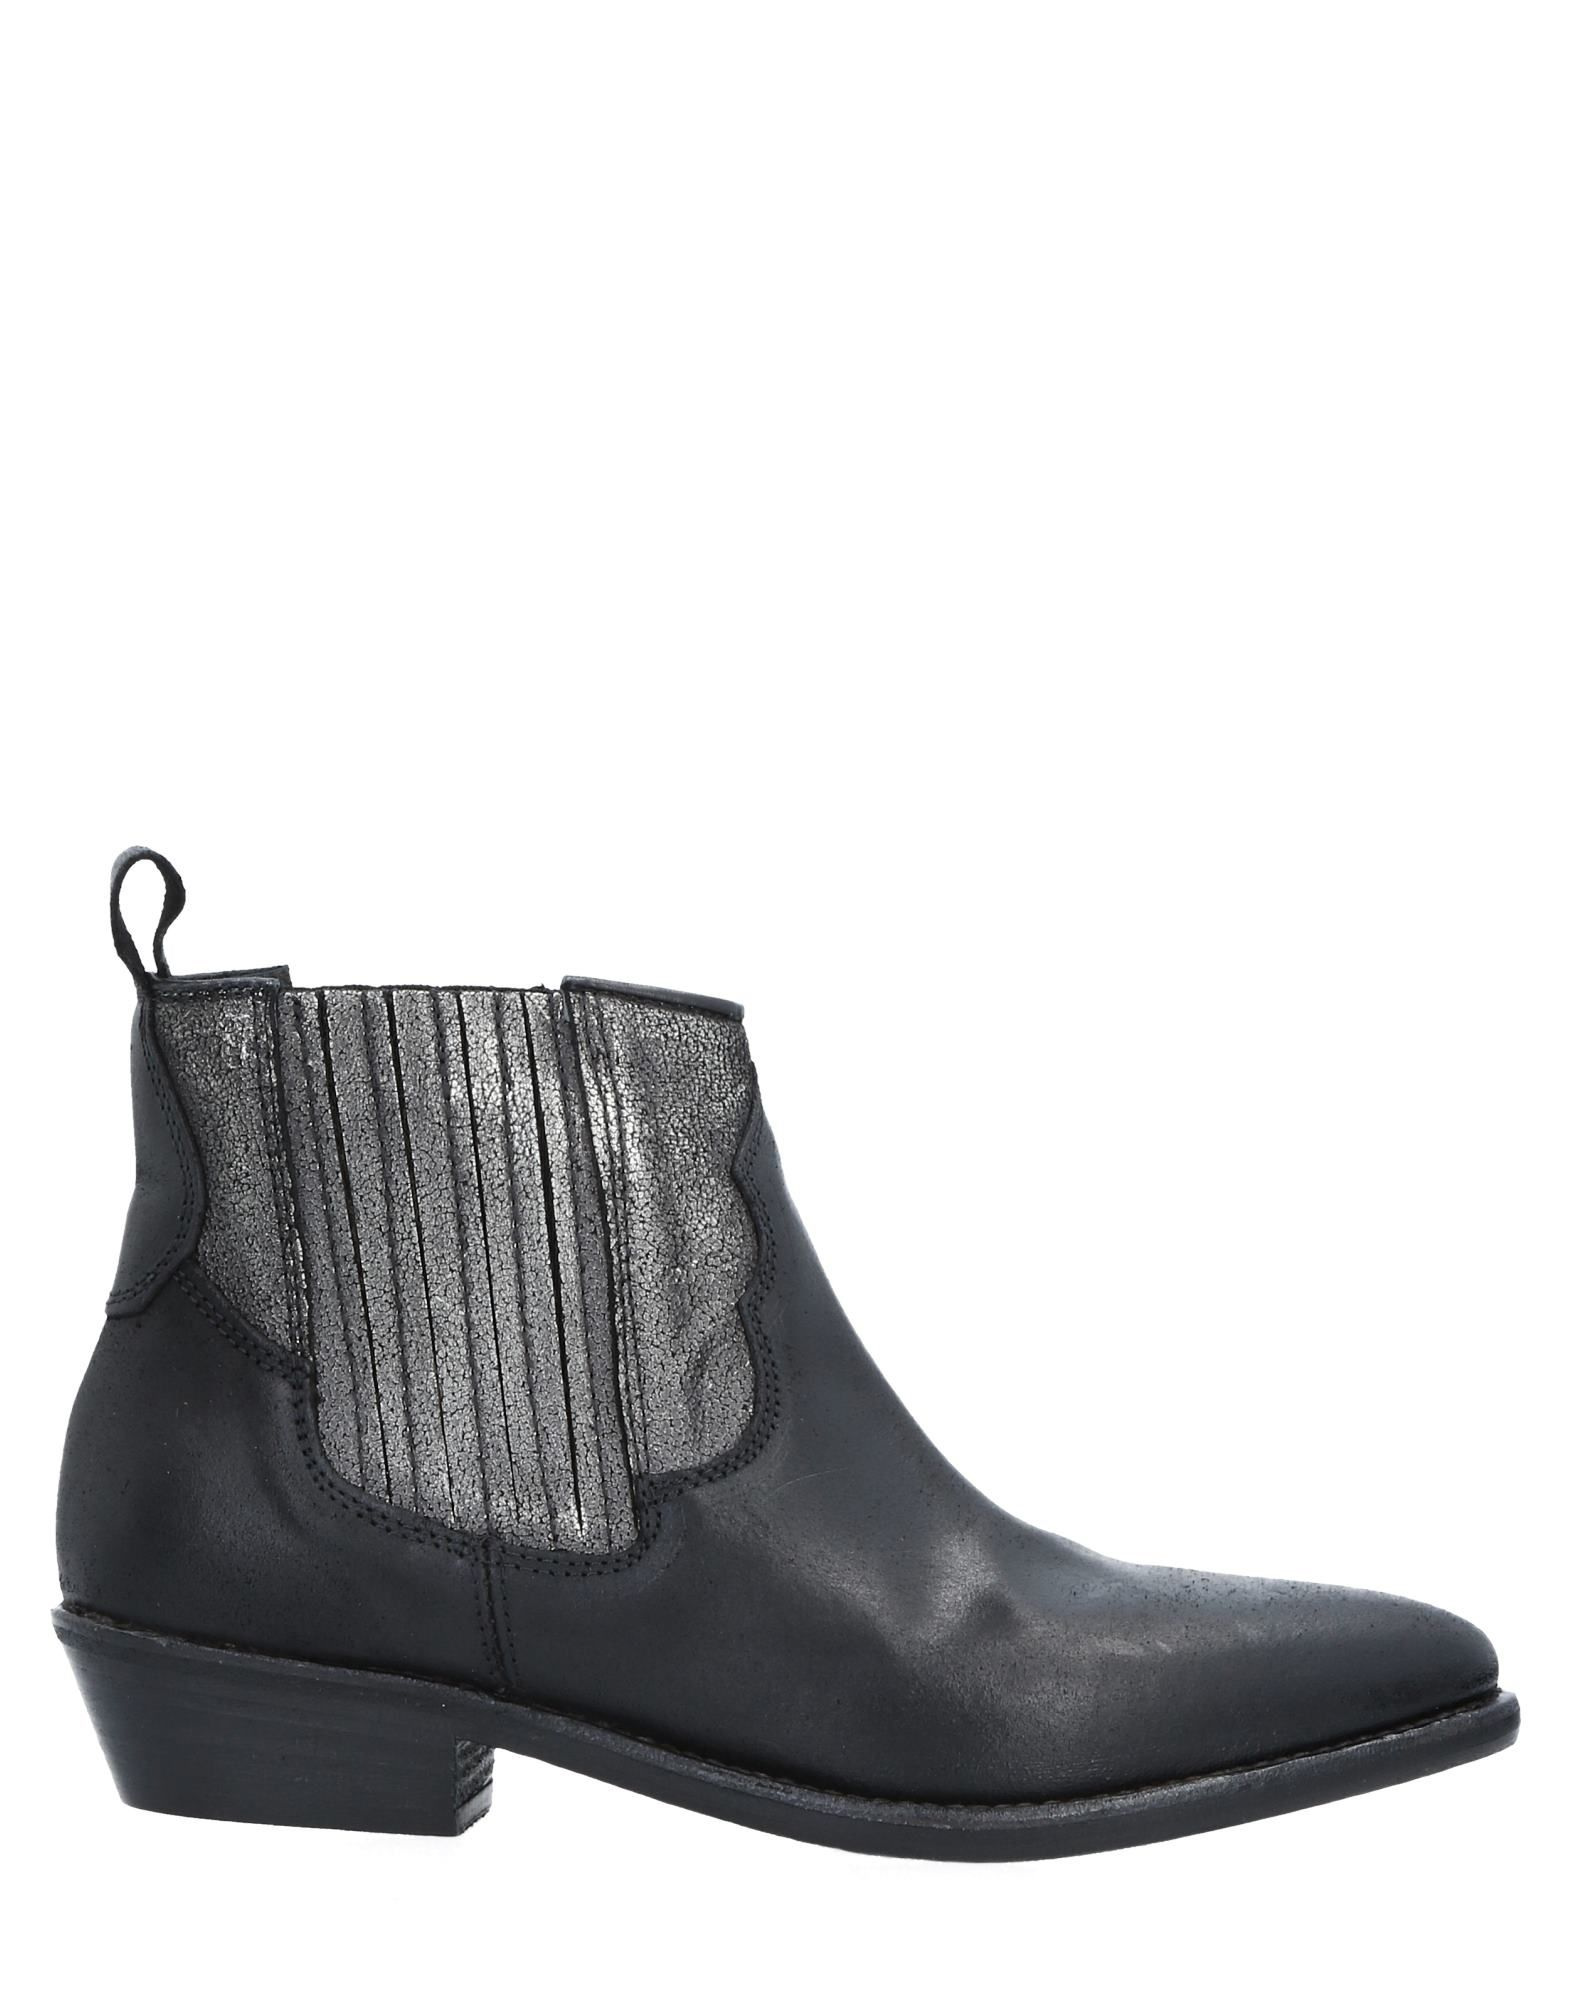 Hundred 100 Ankle 100 Boot - Women Hundred 100 Ankle Ankle Boots online on  Canada - 11516375GJ b6491e